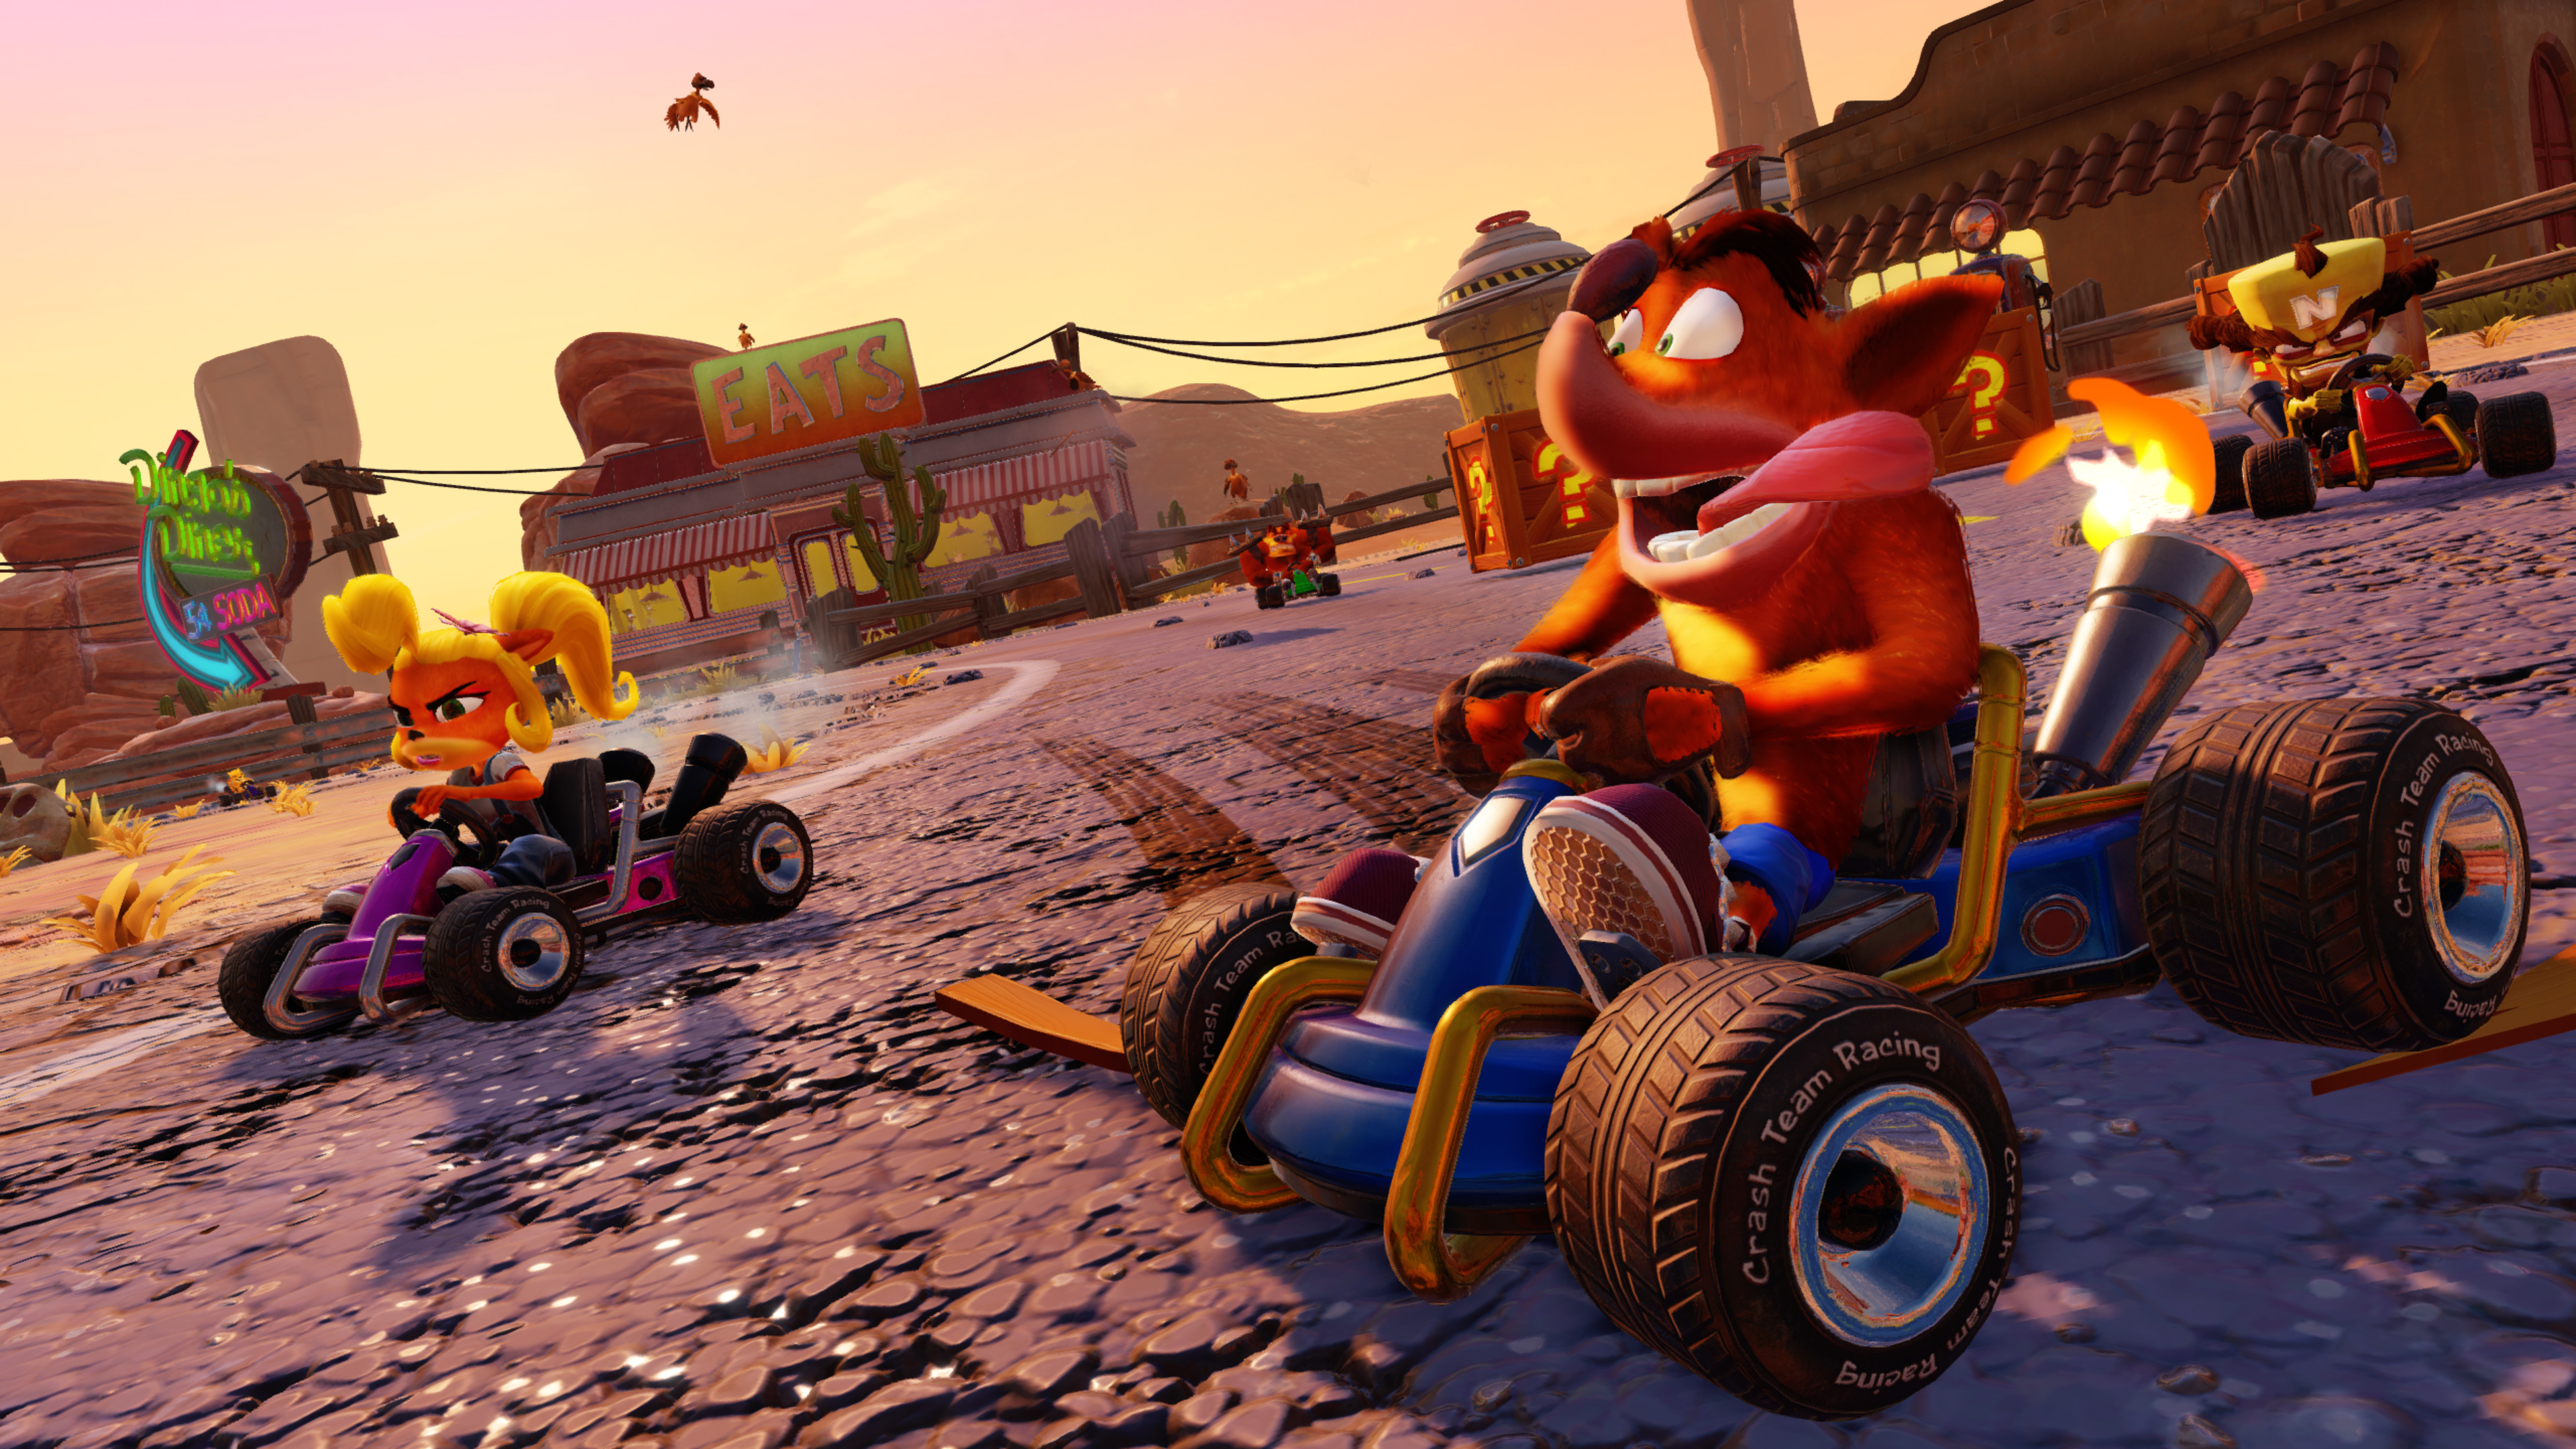 Descargar Crash Team Racing Nitro Fueled Gratis para